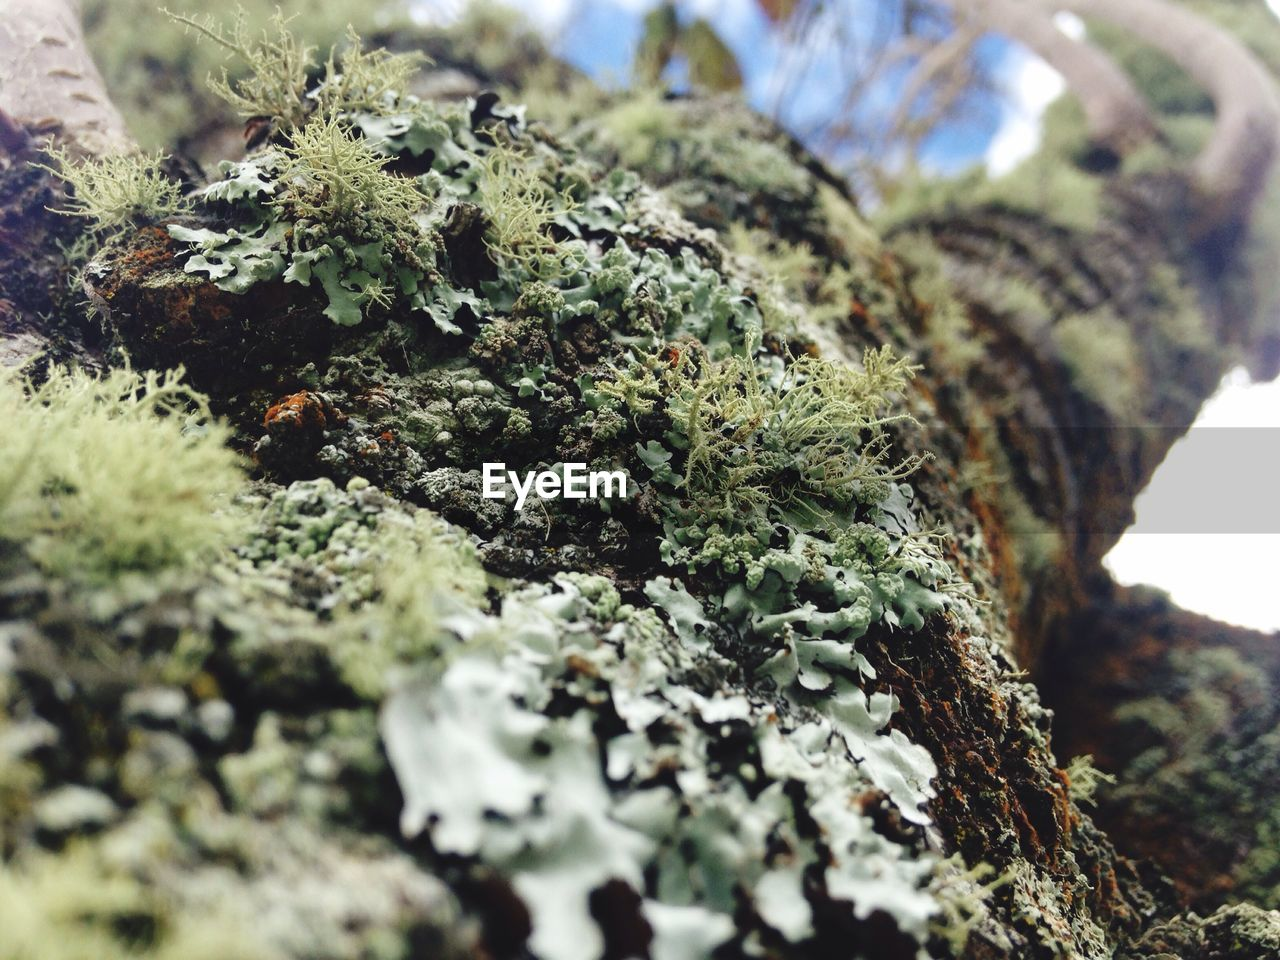 selective focus, close-up, plant, moss, growth, no people, day, nature, marijuana - herbal cannabis, green color, rock - object, focus on foreground, outdoors, rock, solid, lichen, tree, still life, cannabis plant, healthcare and medicine